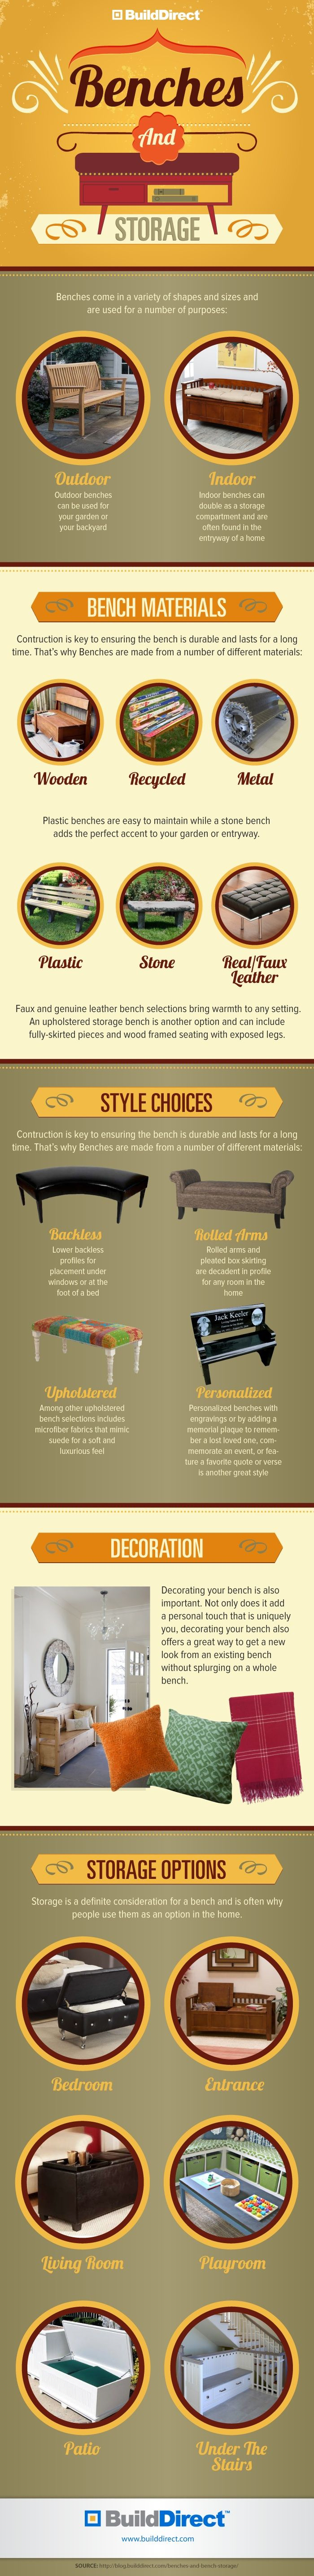 BuildDirect.Benches Best Benches and Storage: Serenity, Comfort, Personality